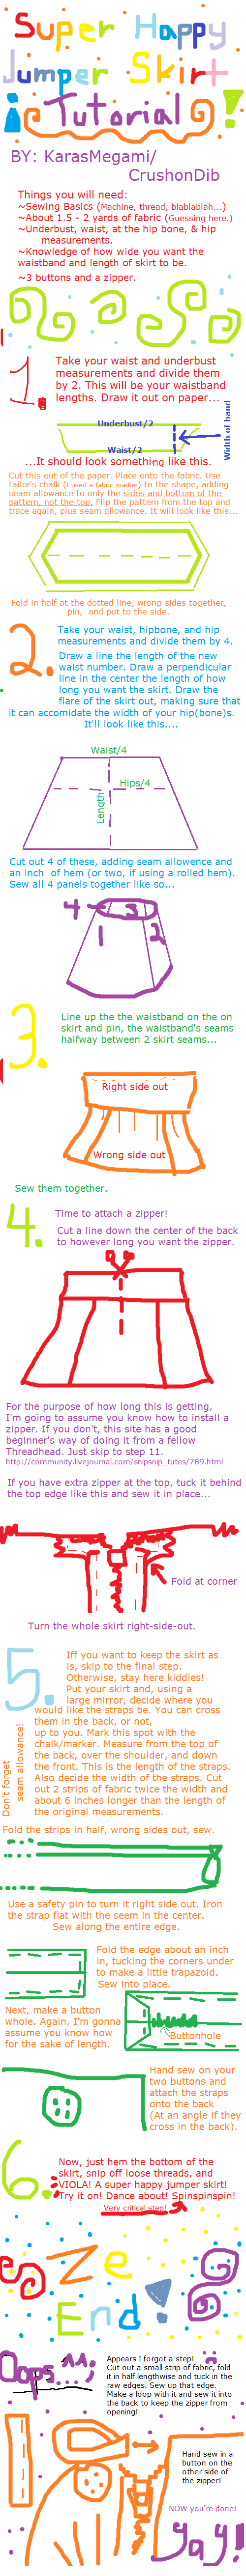 Happy Jumper Skirt Tutorial by CrushonDib